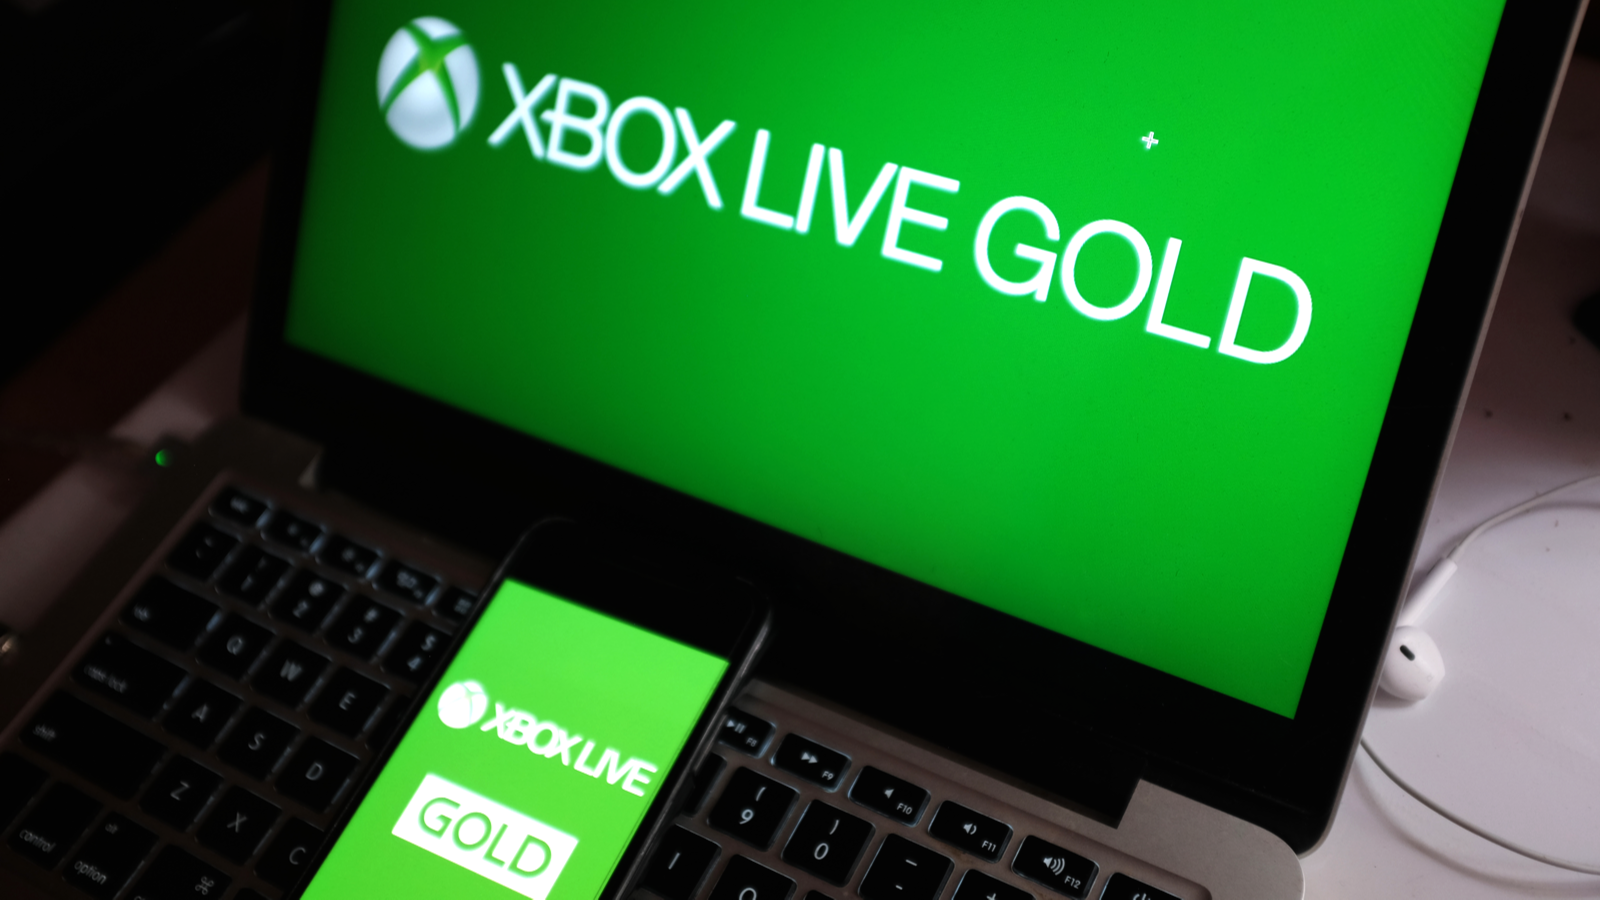 Smart phone with the XBOX LIVE GOLD logo that is the online service of the Xbox One console